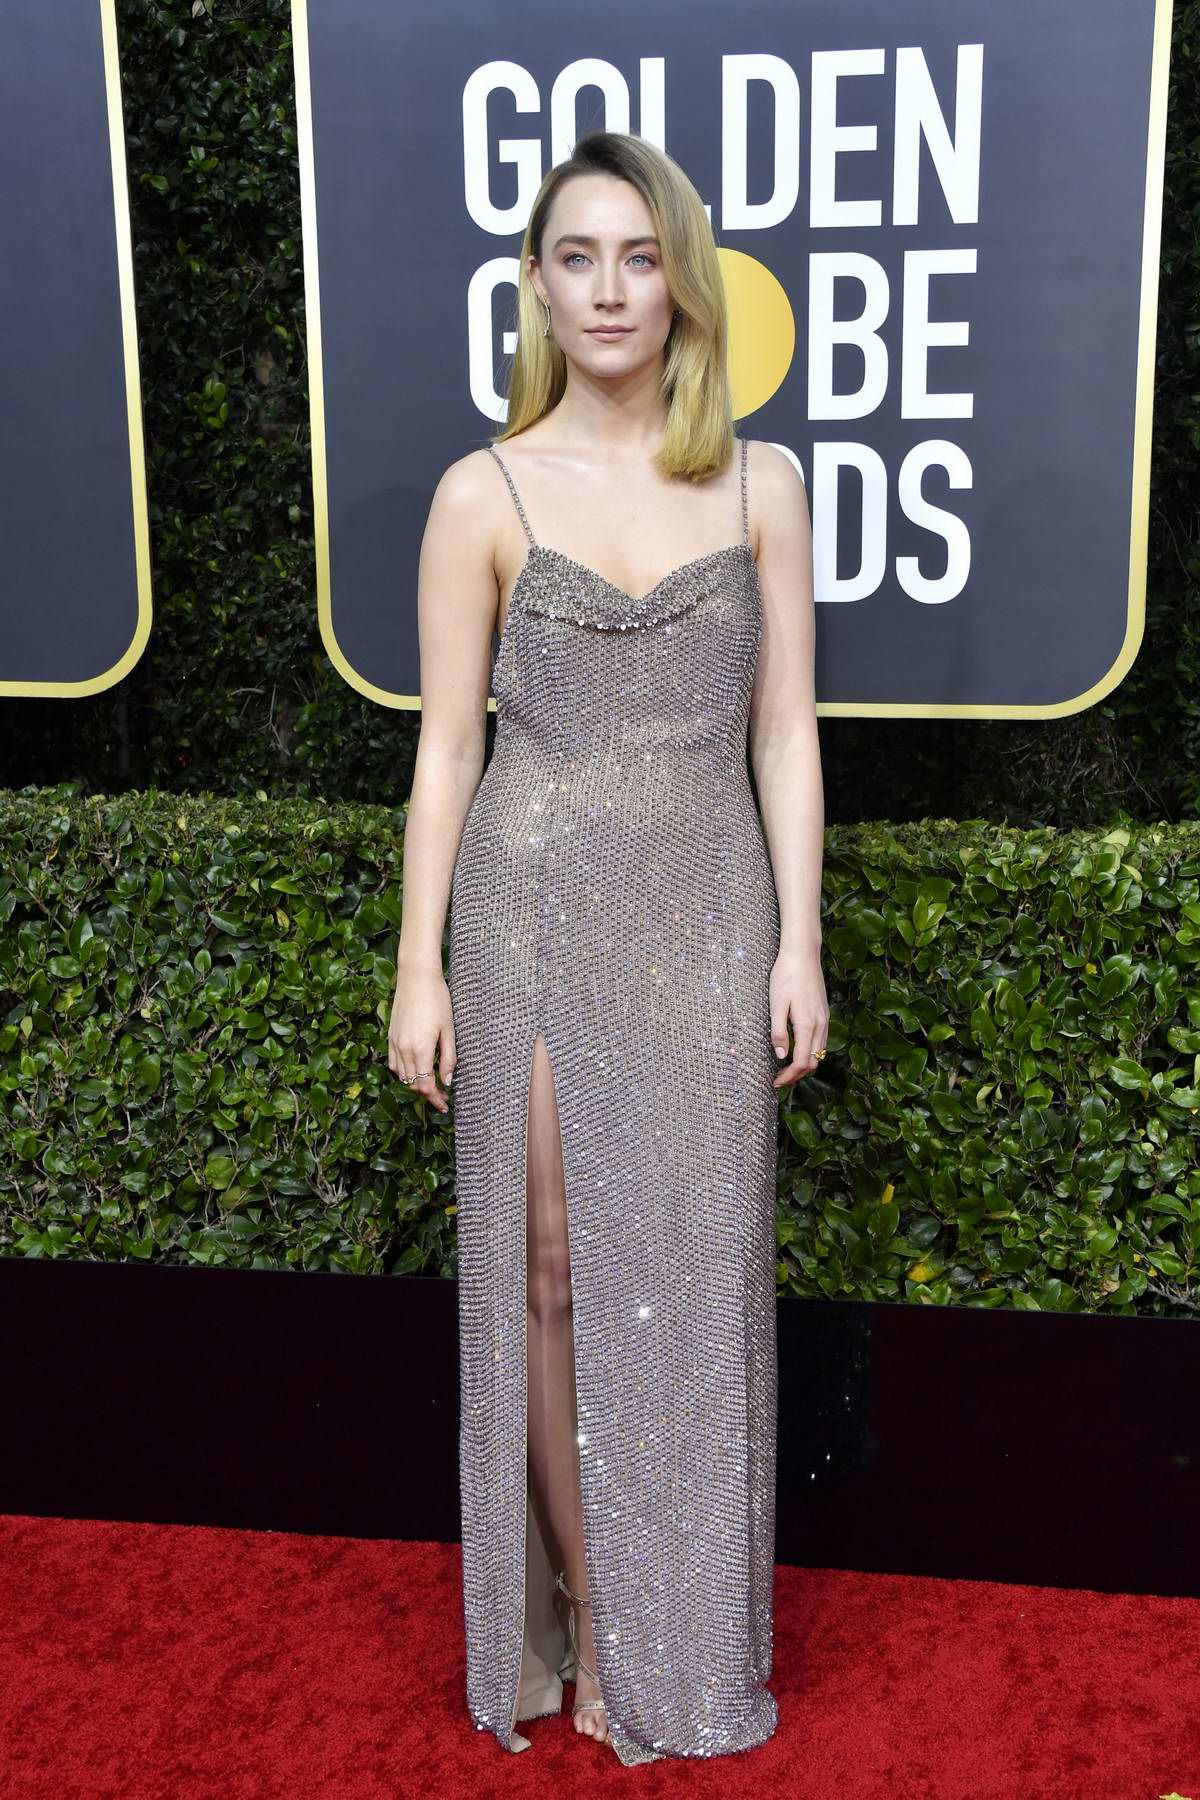 Saoirse Ronan attends the 77th Annual Golden Globe Awards at The Beverly Hilton Hotel in Beverly Hills, California